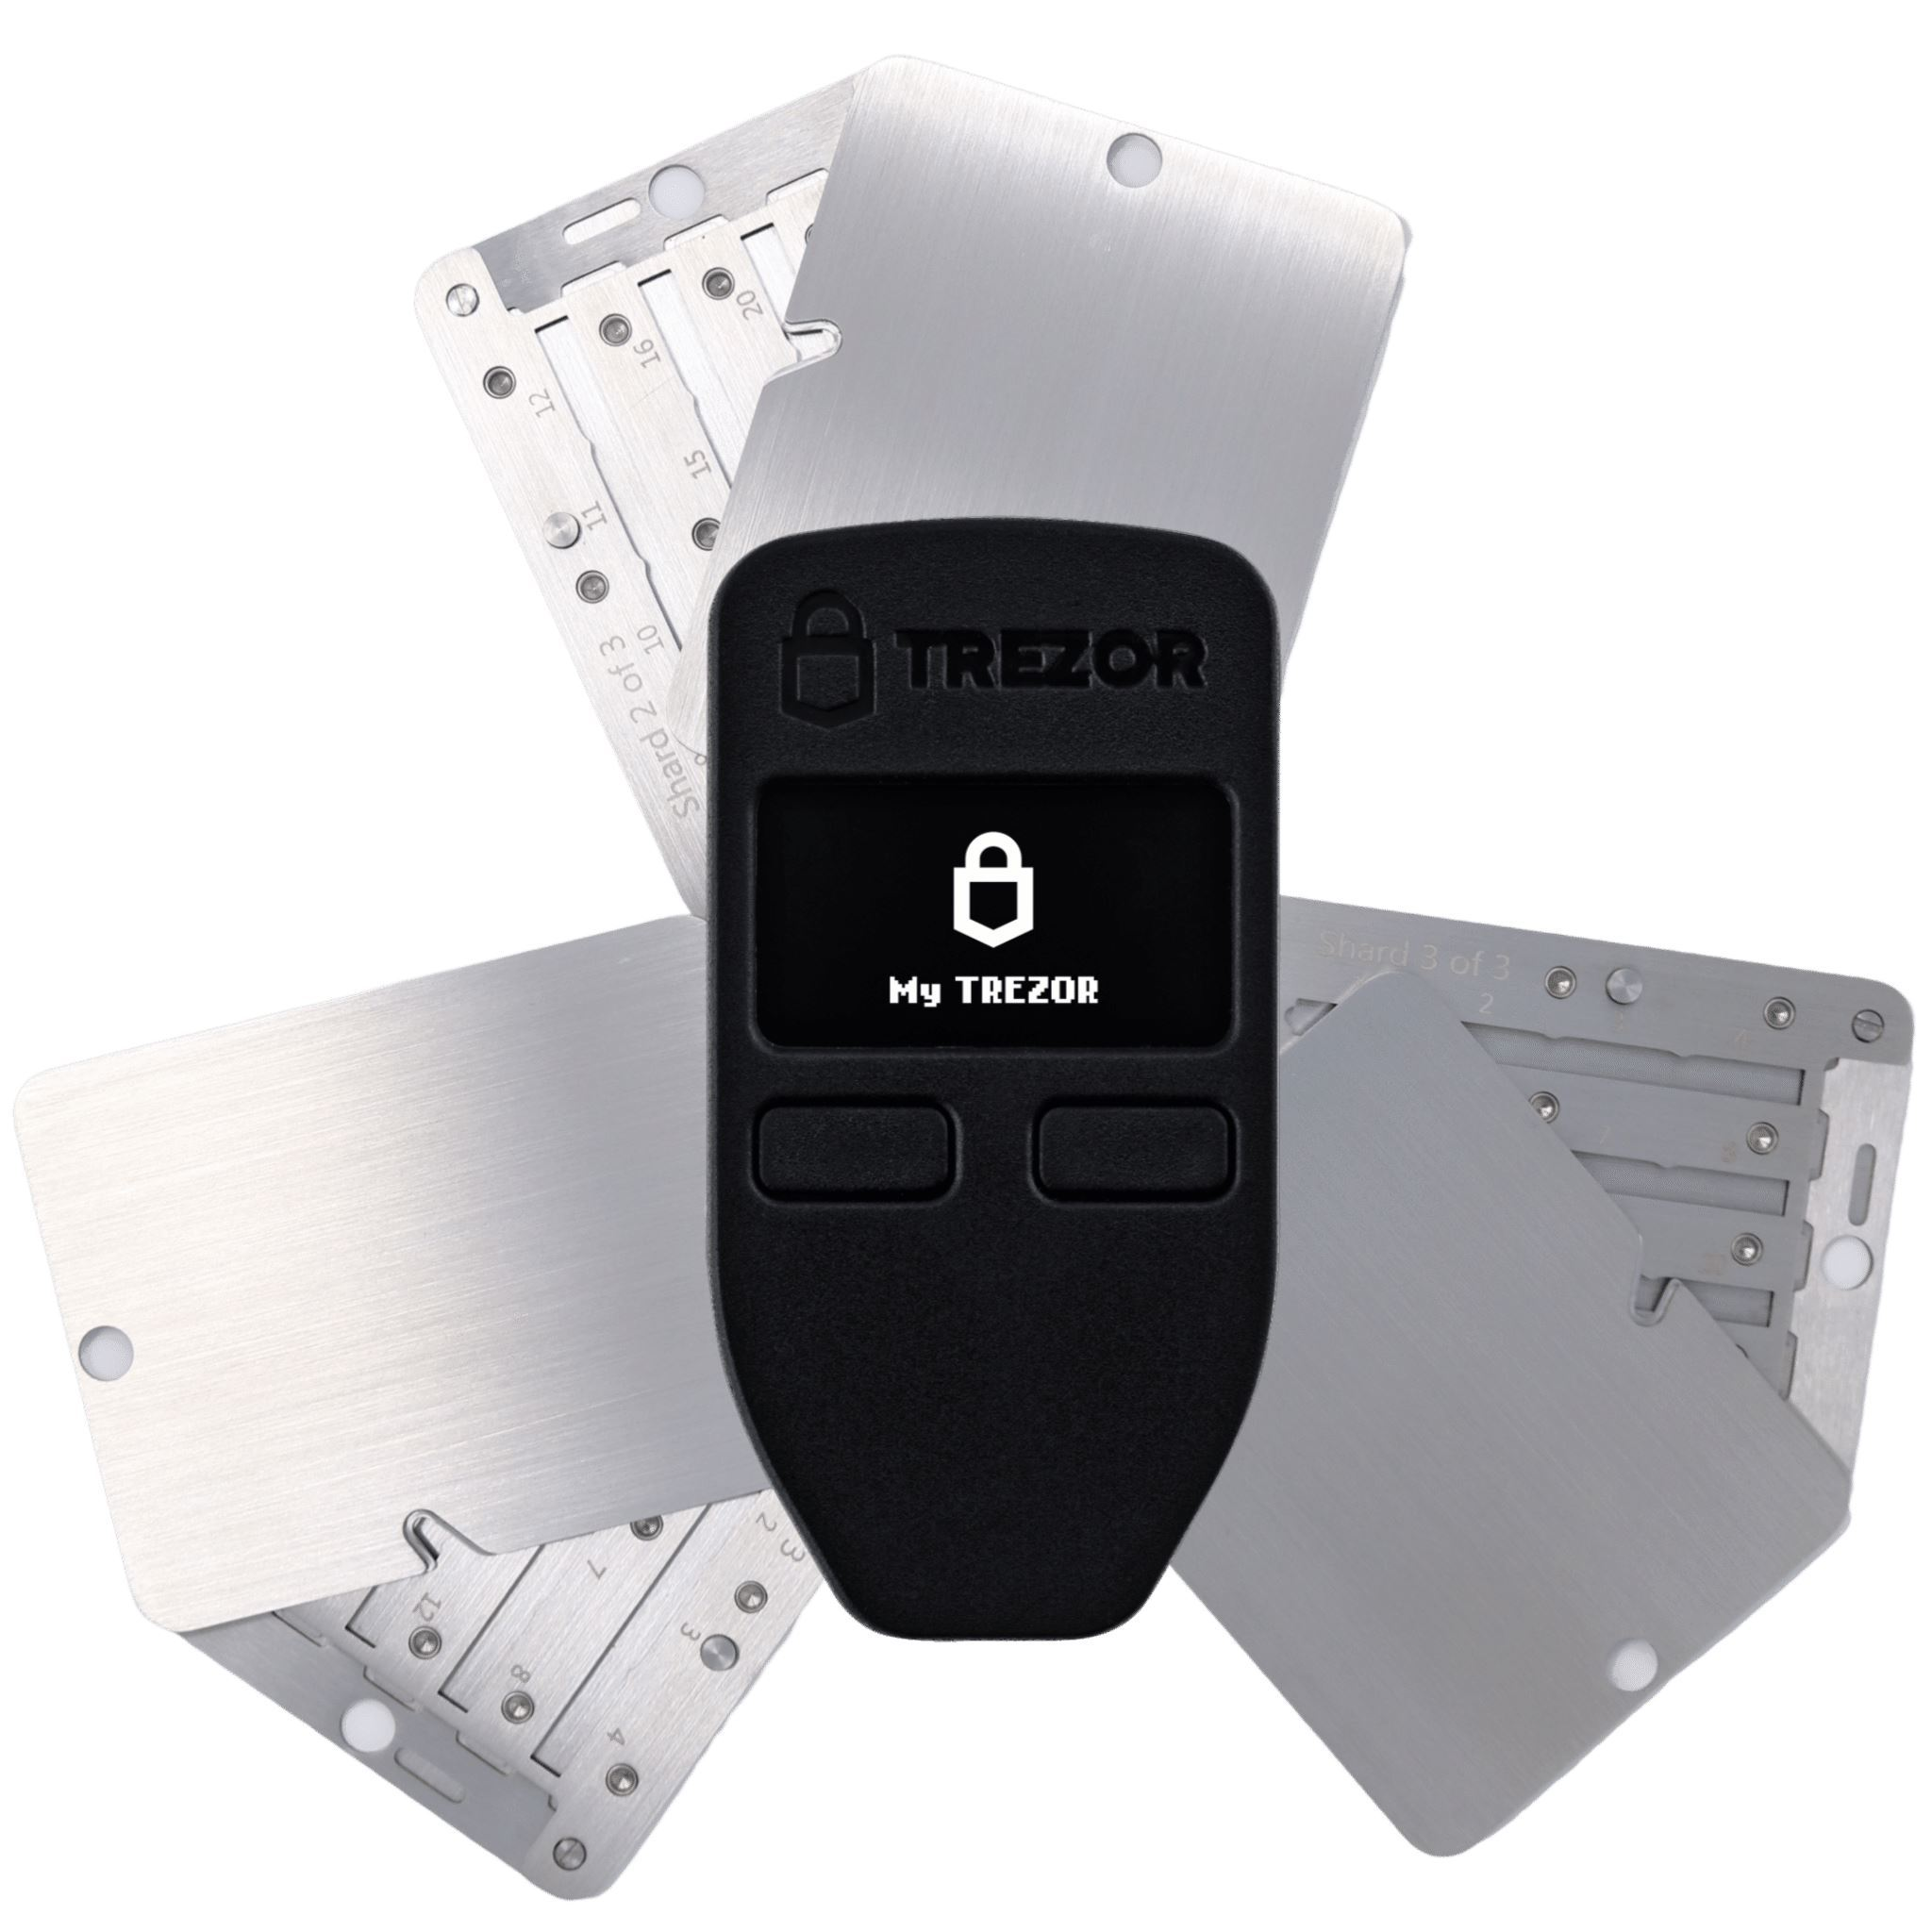 Billfodl and Trezor